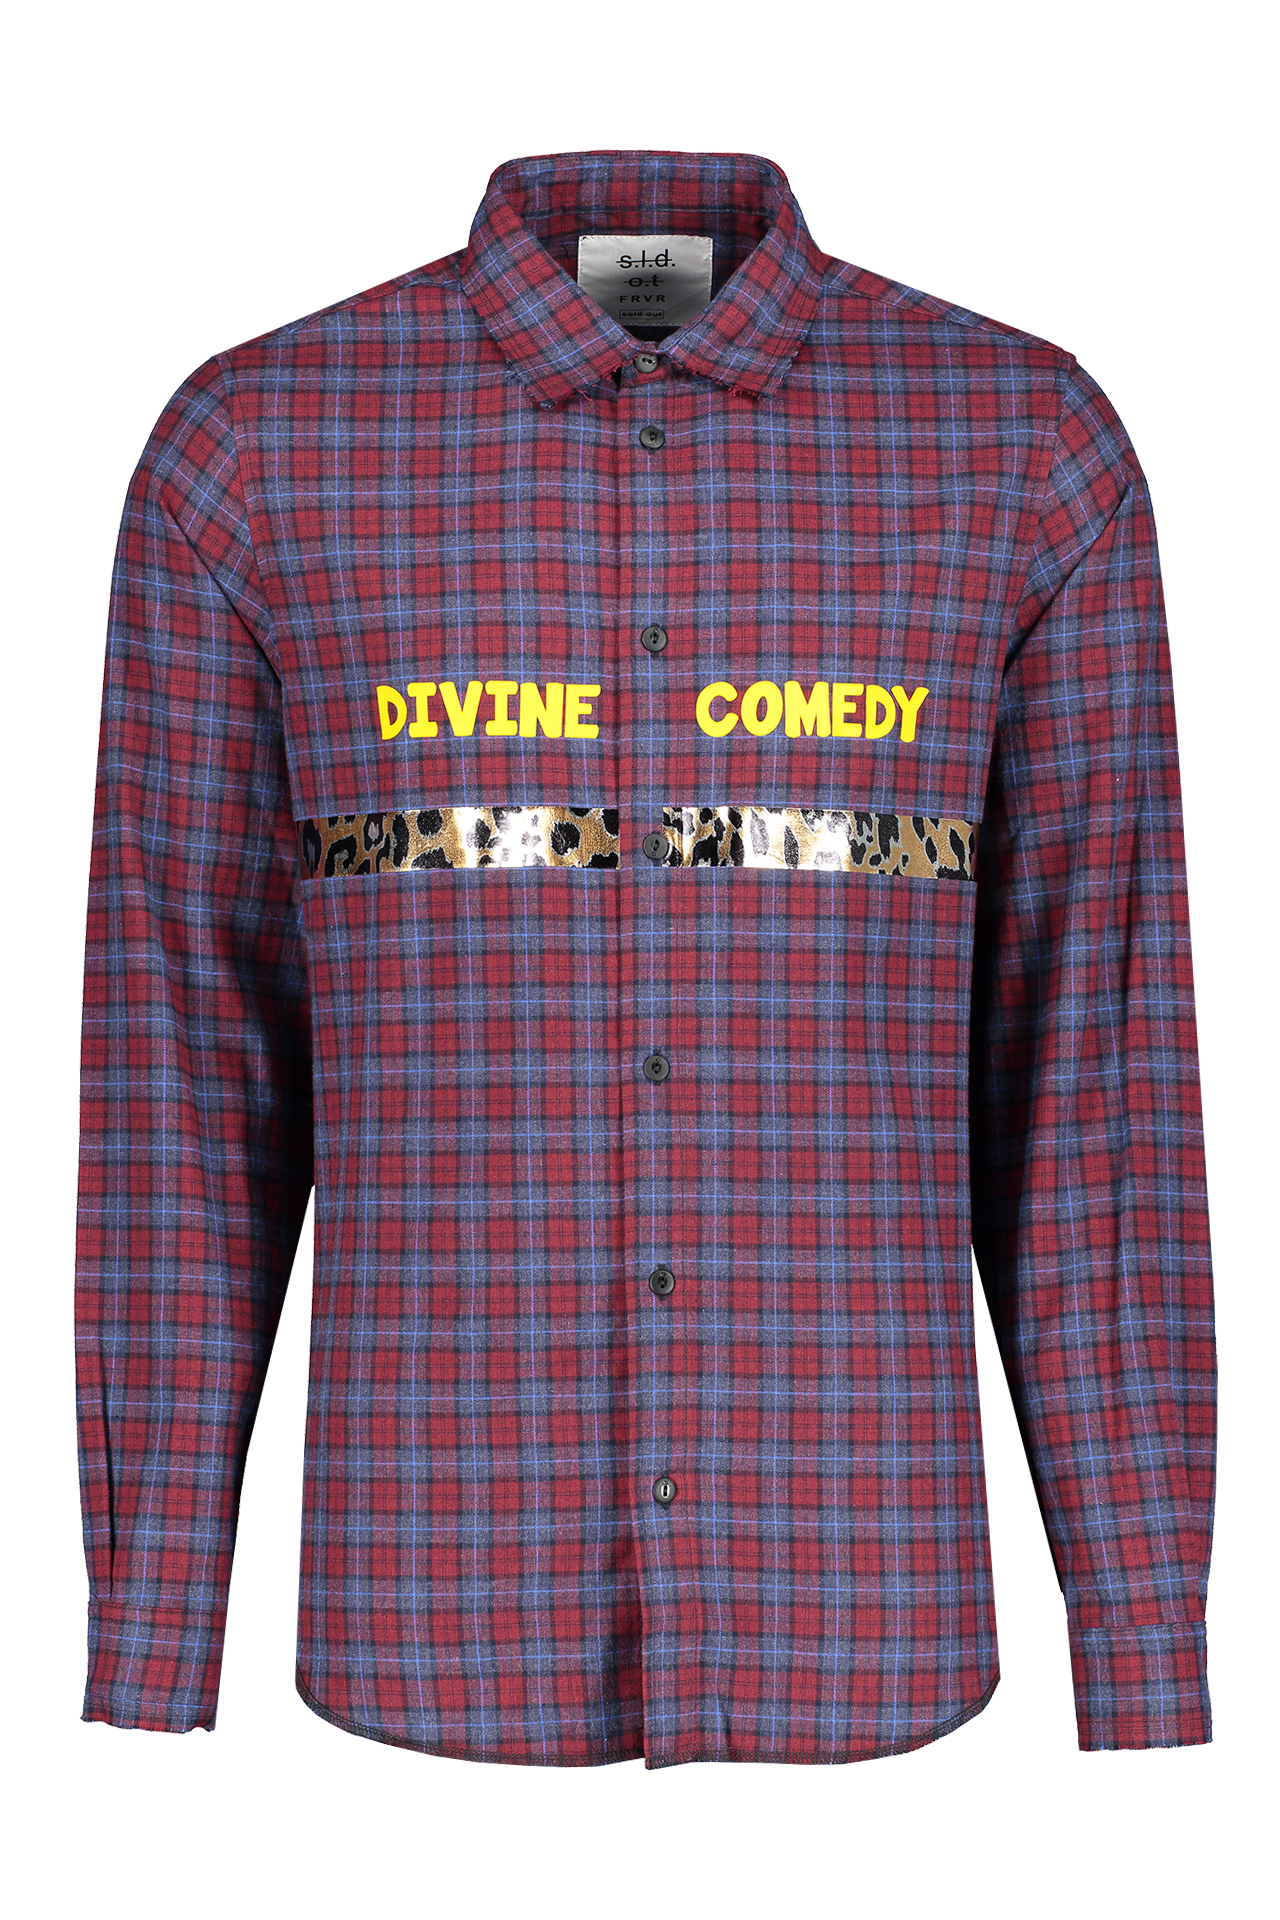 Front view image of Sold Out Long Sleeve Plaid Divine Comedy Shirt